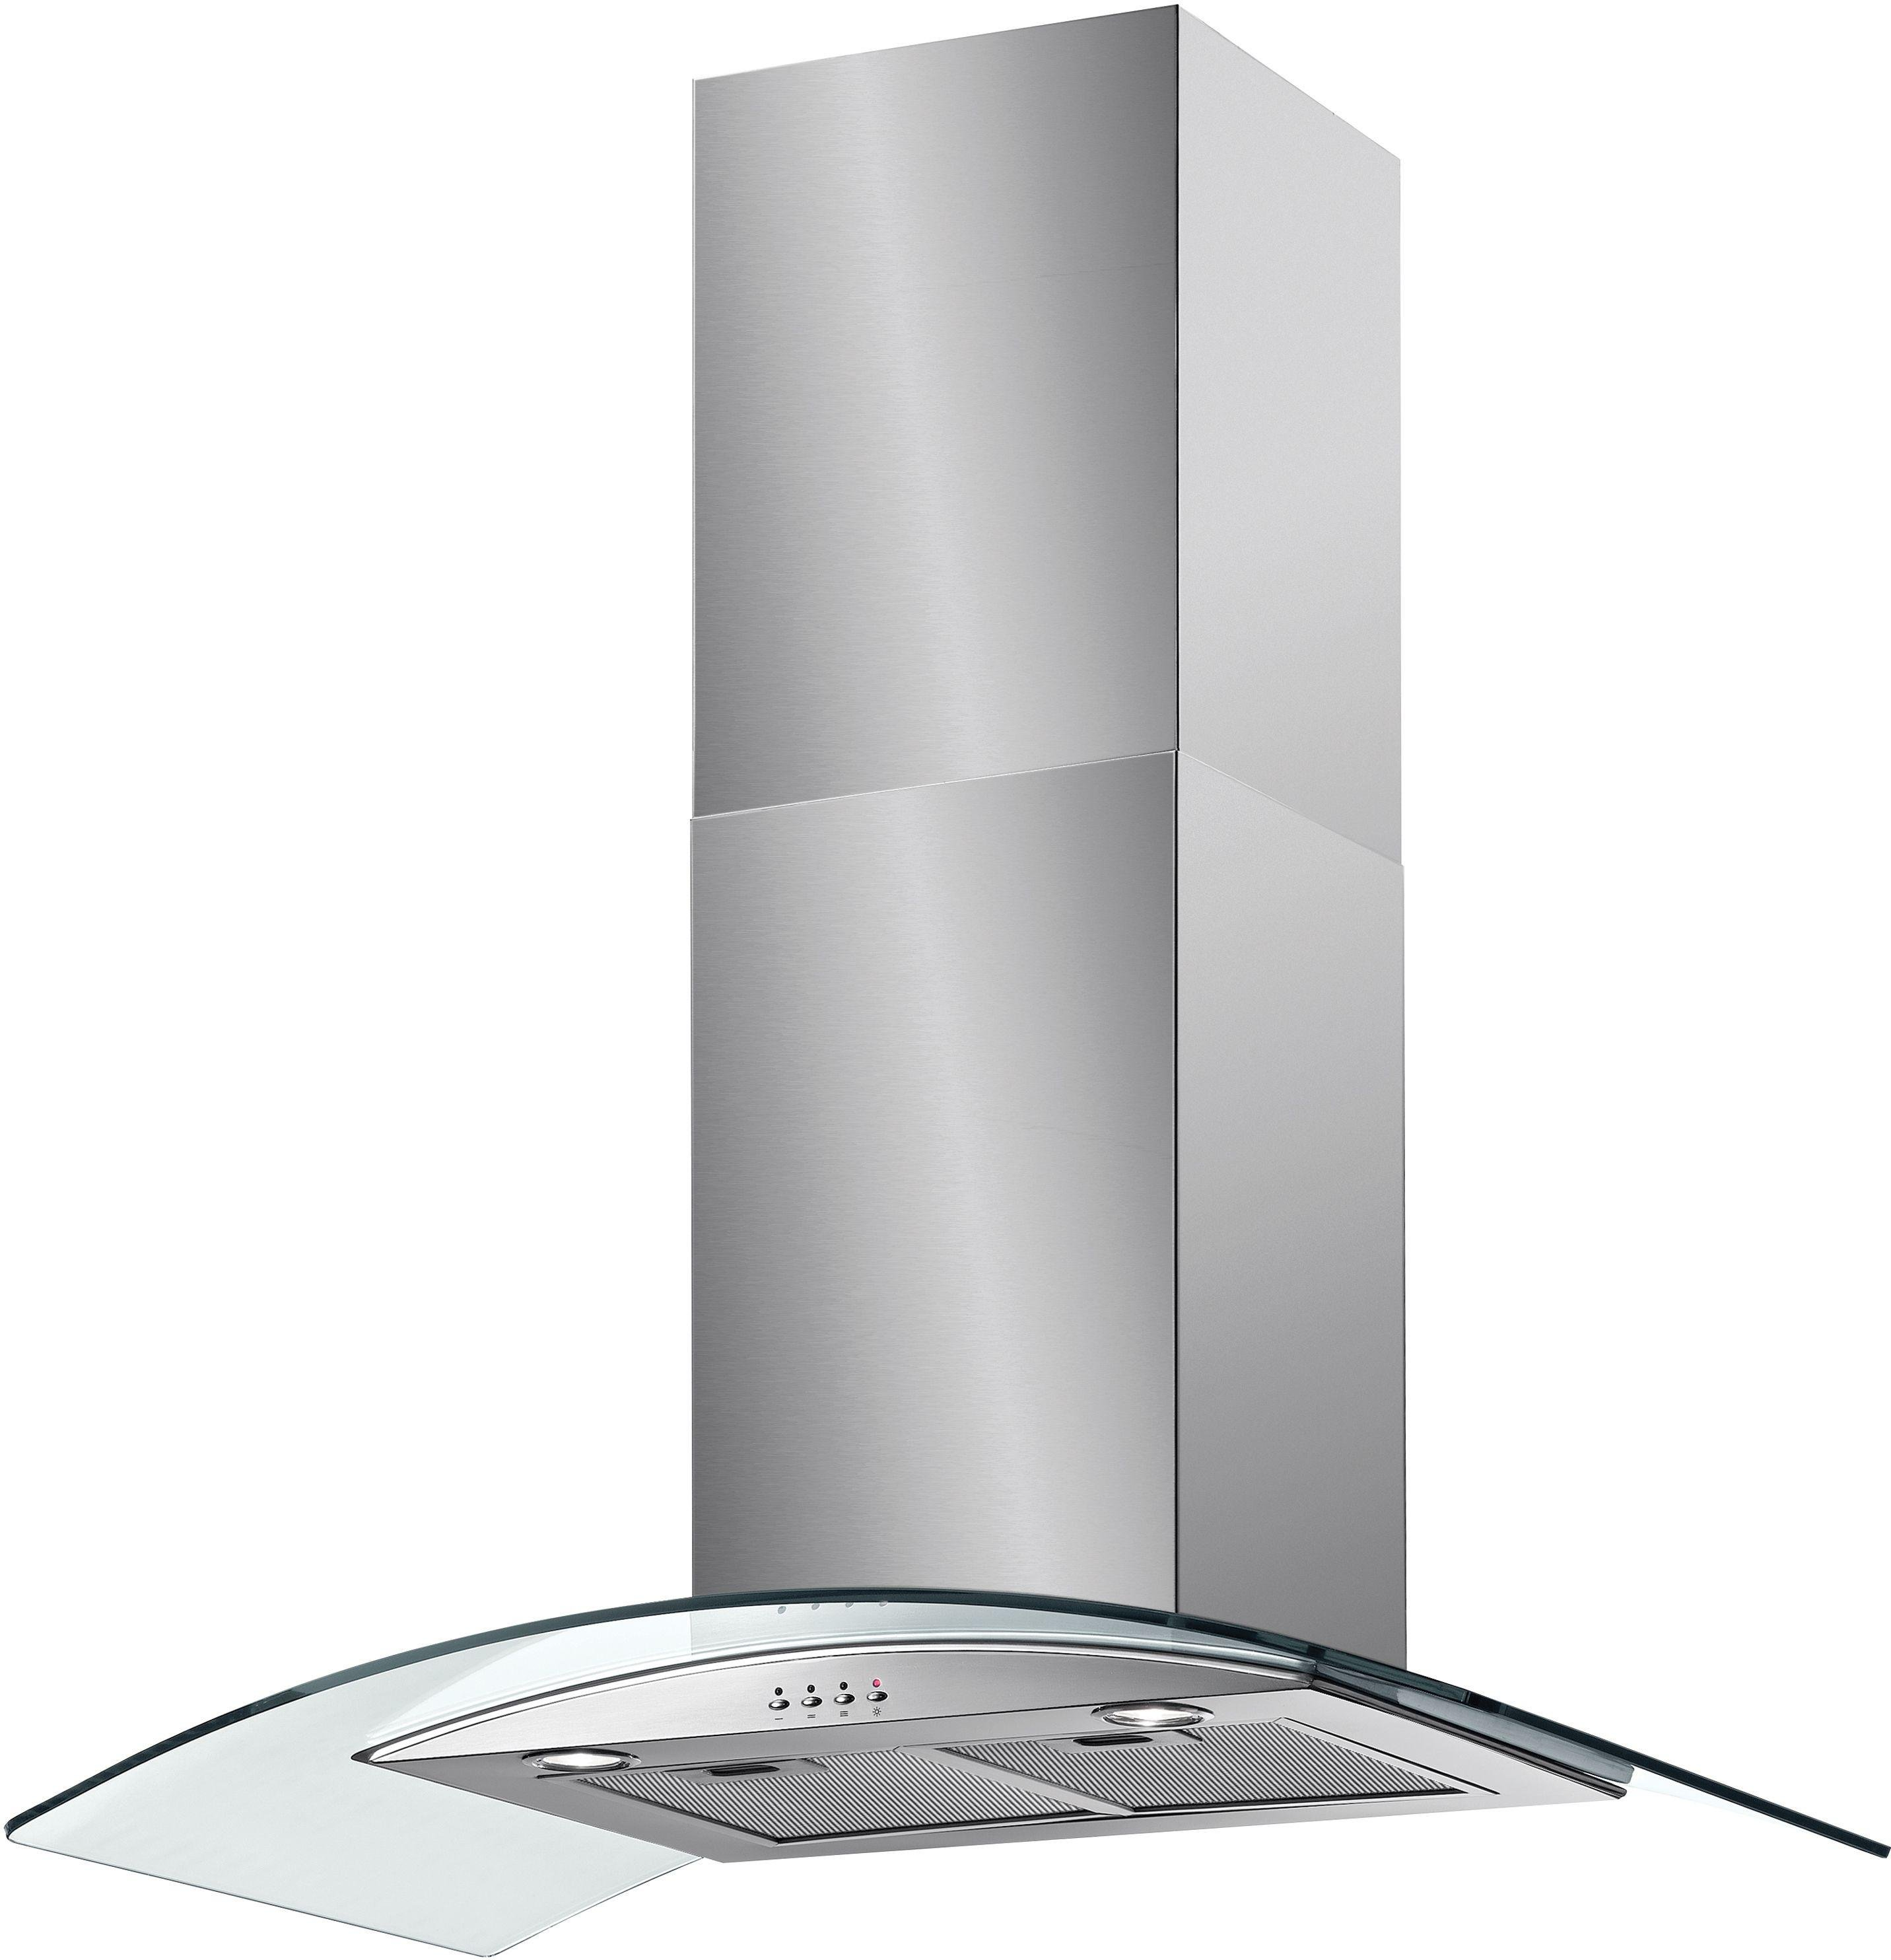 Image of Baumatic BT93GL 90cm Glass Cooker Hood - Stainless Steel